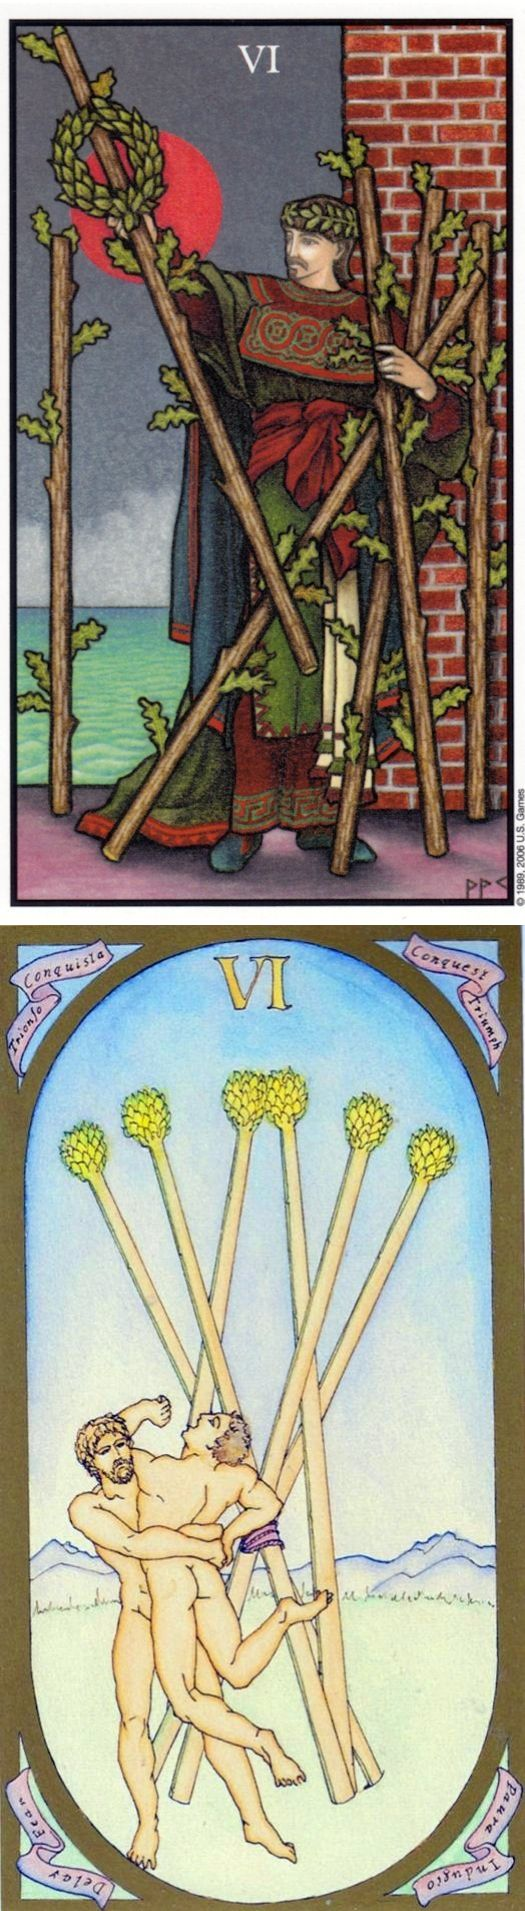 Six of Wands: victory and lack of recognition (reverse). Connolly Tarot deck and Renaissance Tarot deck: ta rot, tarot live yes no vs free tarot reading yes no. The best divination spell and cartomancy.